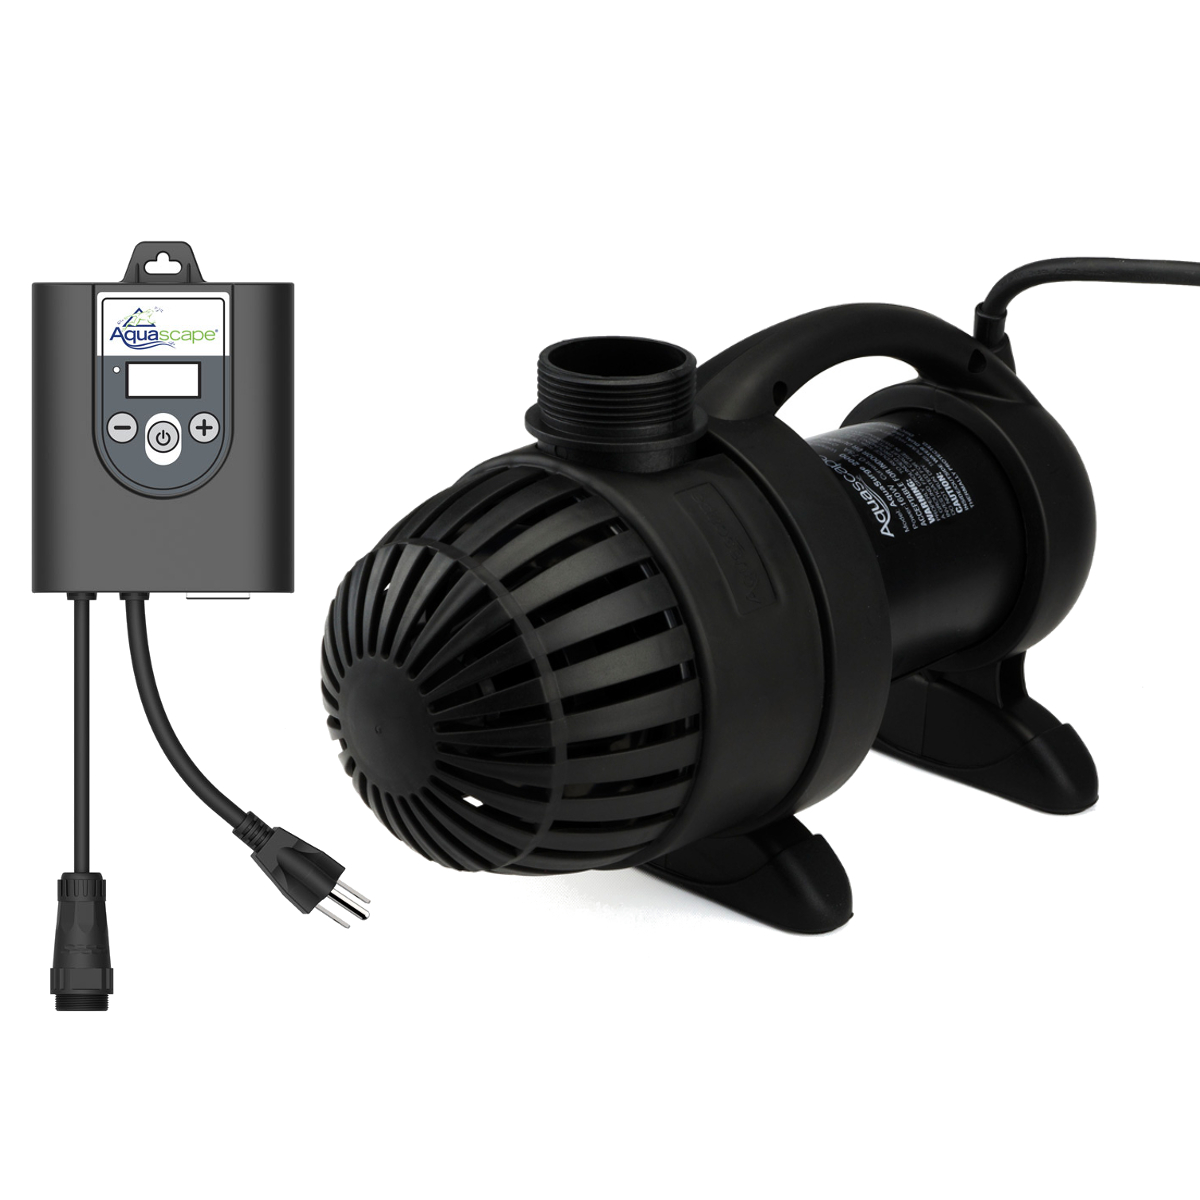 Aquascape Aquasurge Pro Adjustable Flow 2000gph 4000gph Pond Pump Dig Remote Ebay